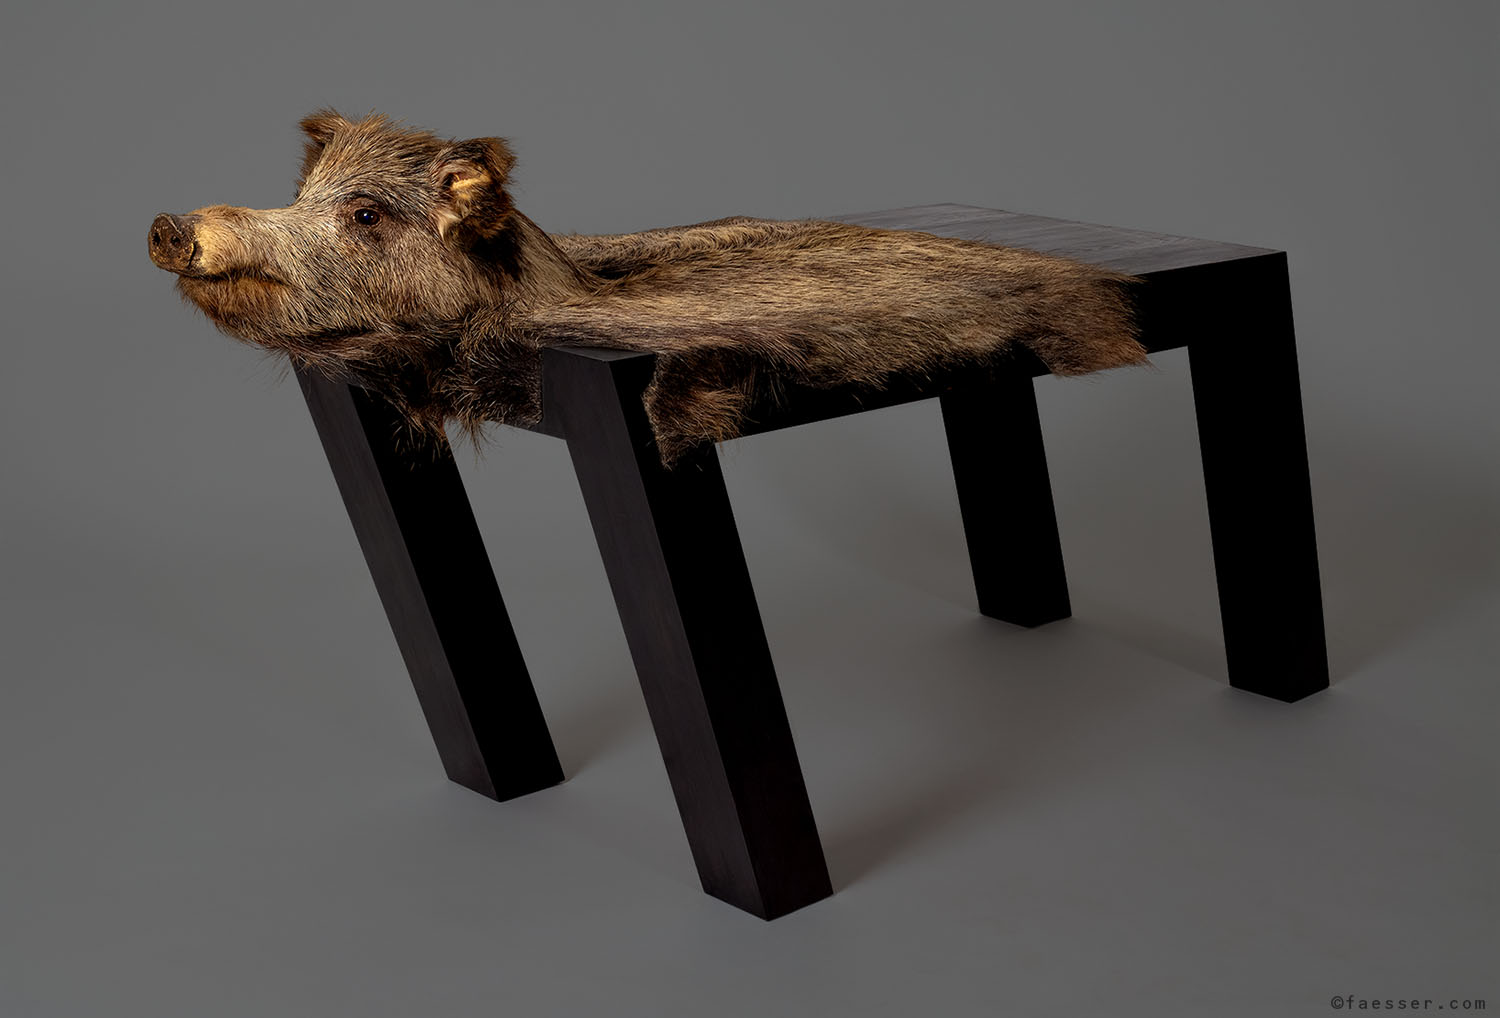 Functional side table sculpture with wild boar; work of art; artist Roland Faesser, sculptor 1987